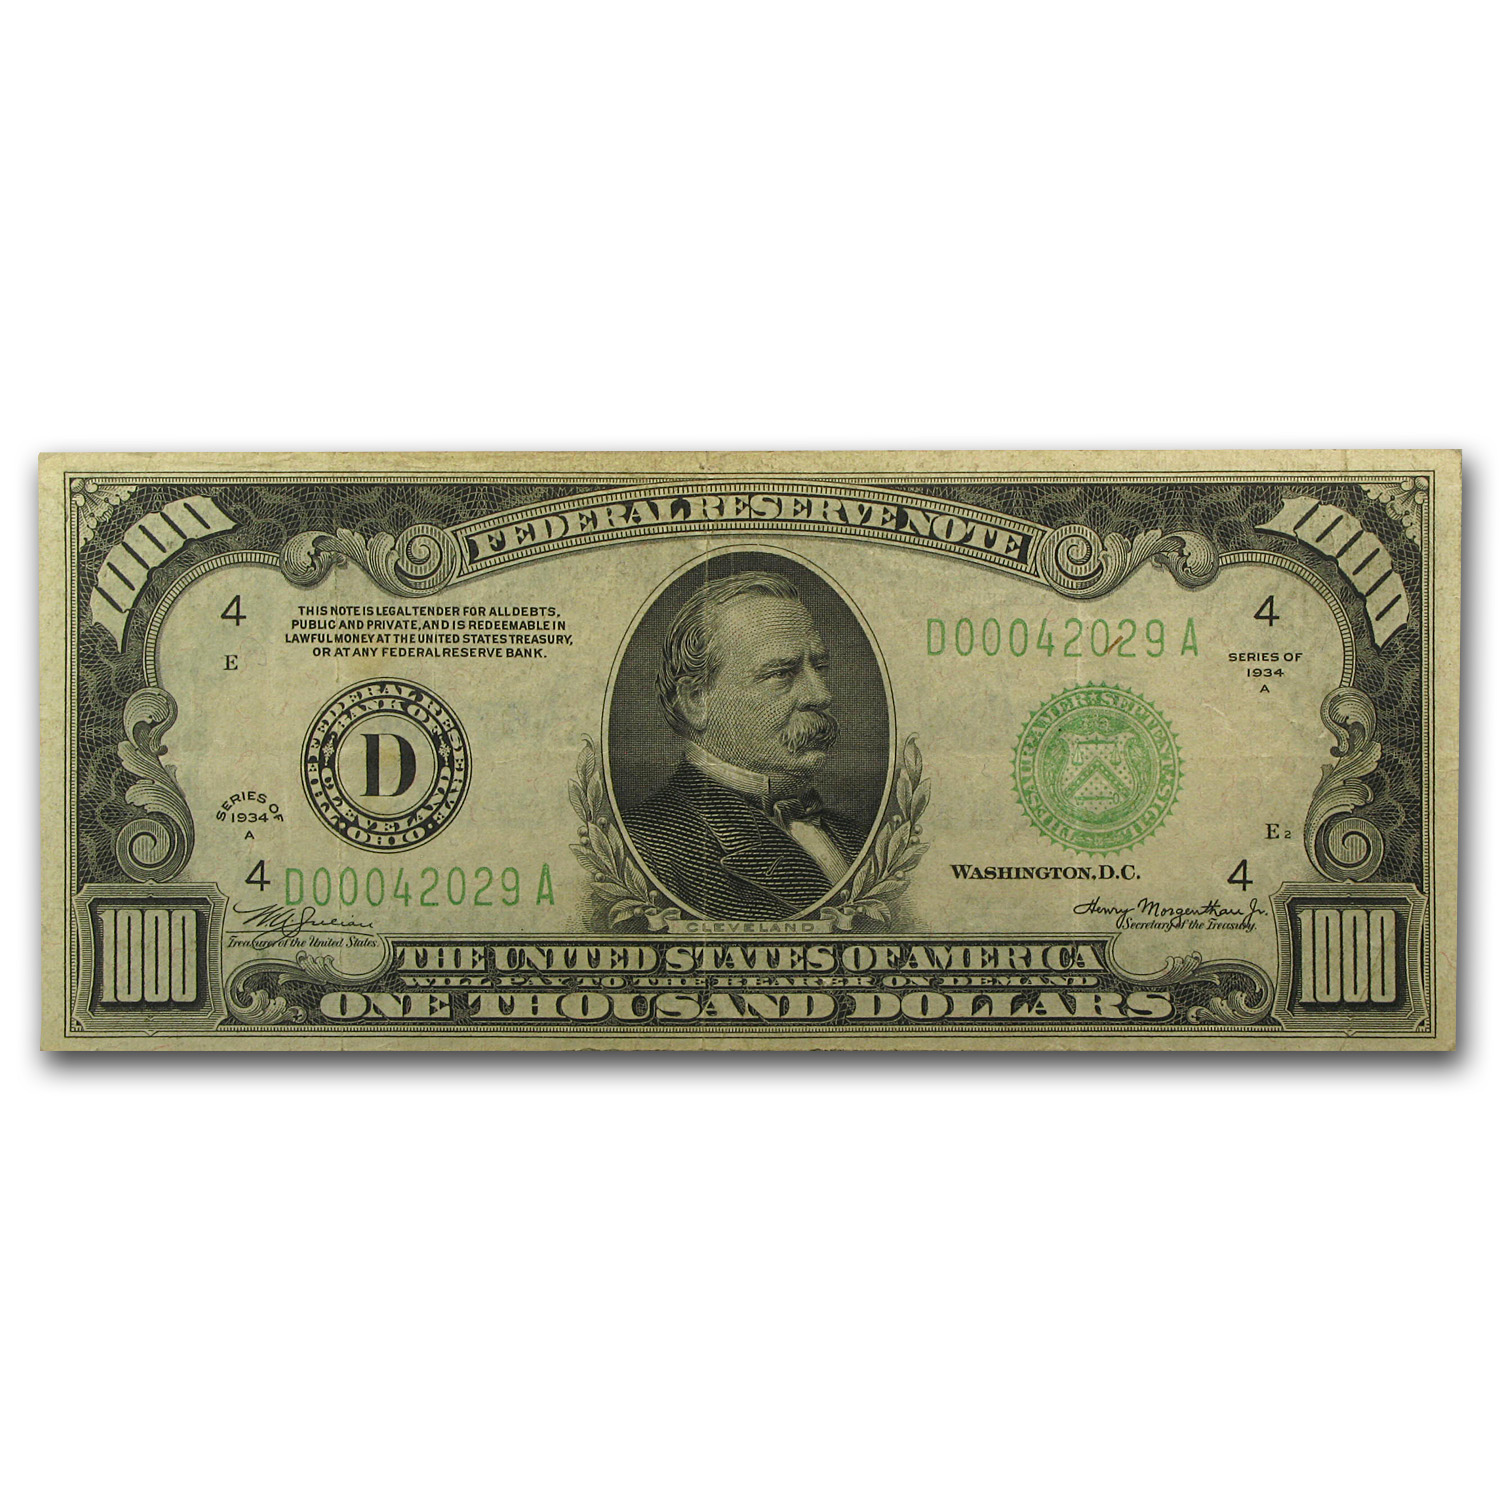 1934-A (D-Cleveland) $1,000 FRN (Very Fine)